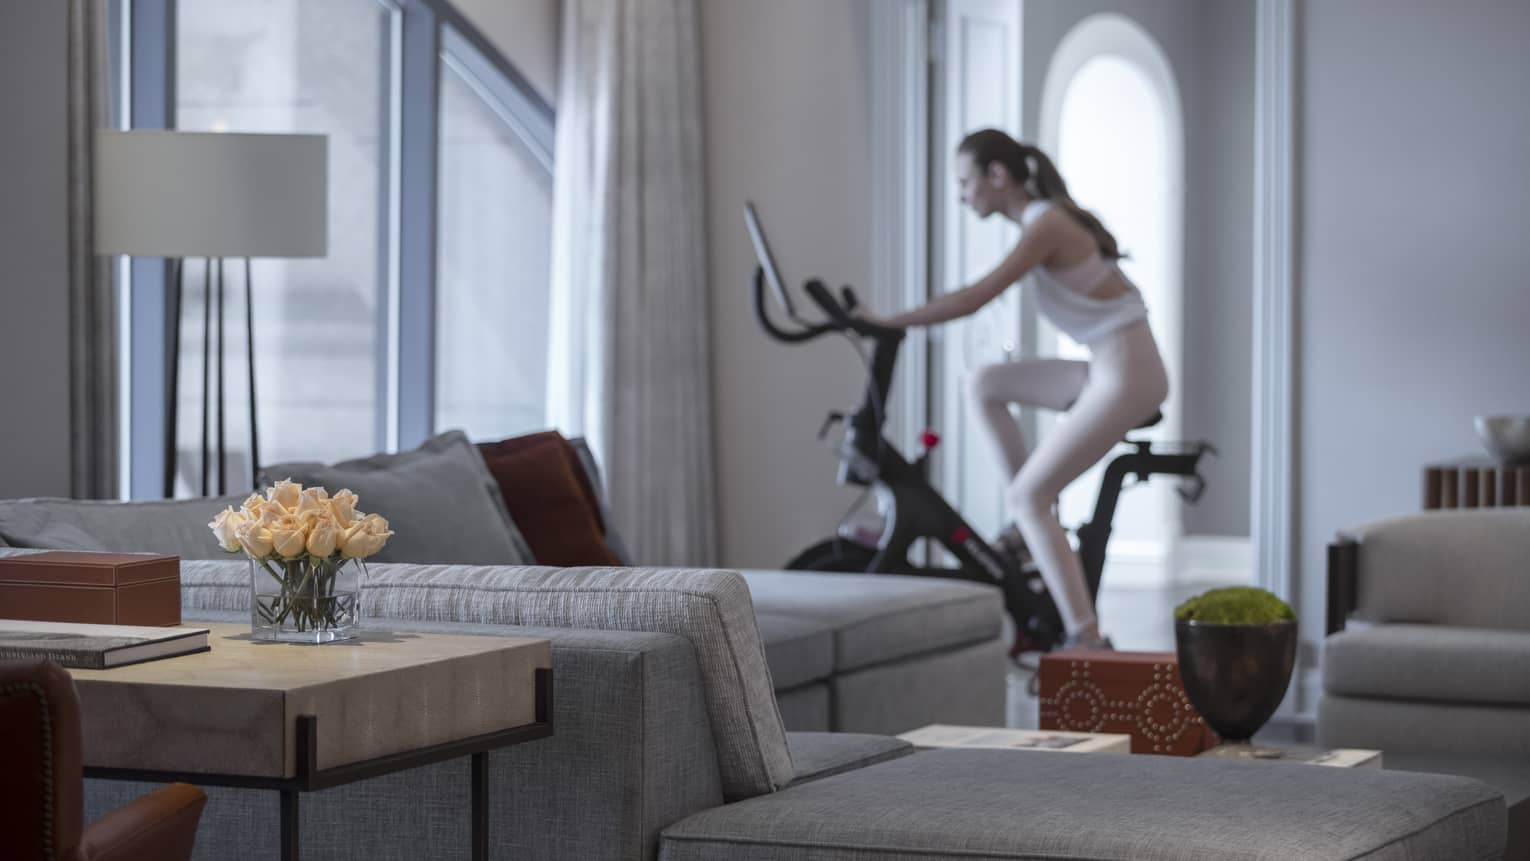 Presidential Suite with beige sectional and woman in white workout gear, riding stationary bike